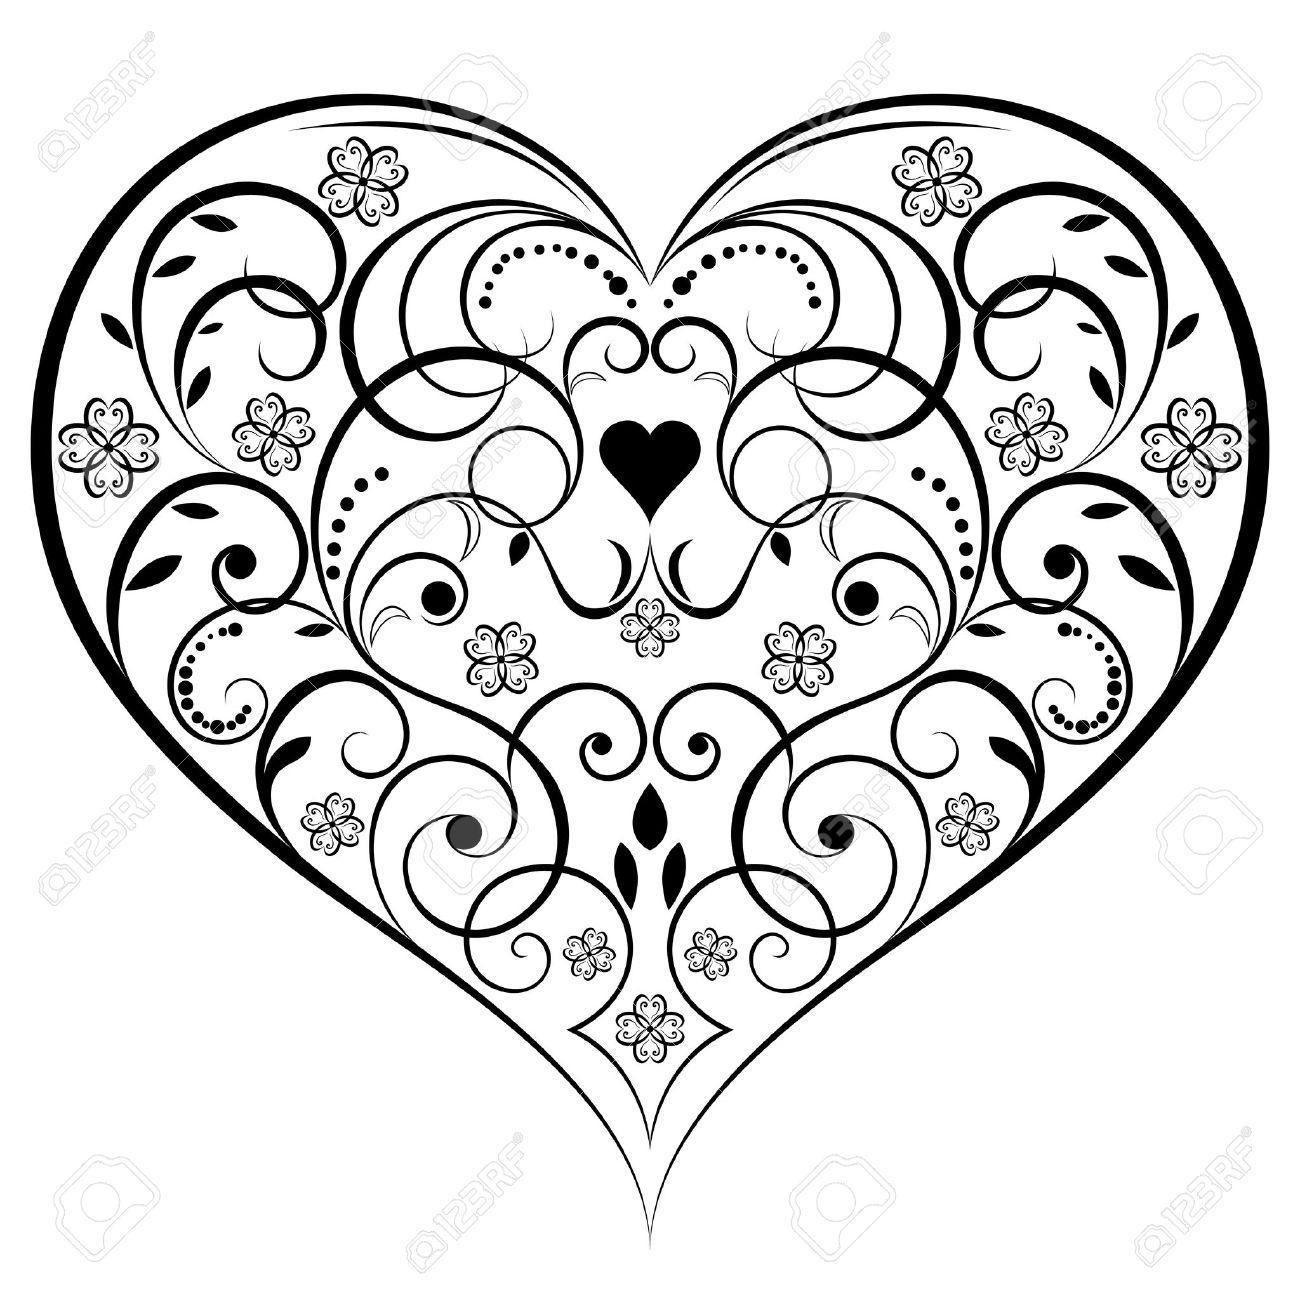 Heart Drawing Black And White At Getdrawings